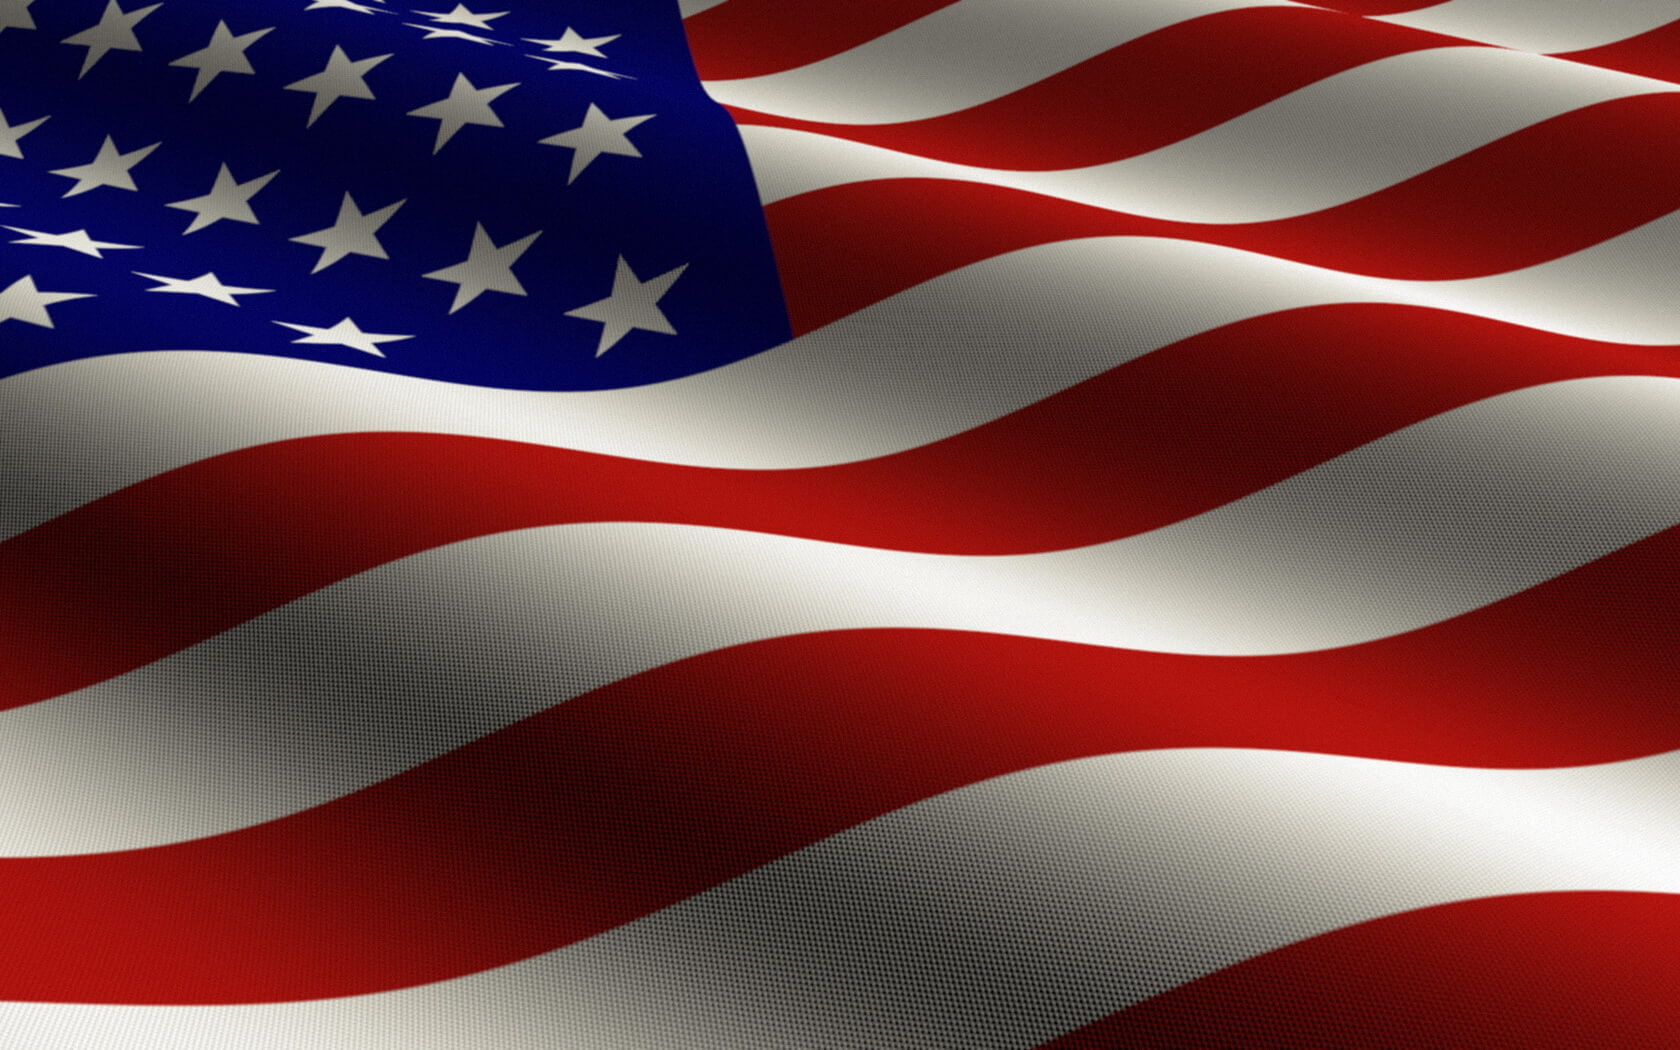 American Flag Backgrounds For Powerpoint Templates - Ppt Regarding American Flag Powerpoint Template